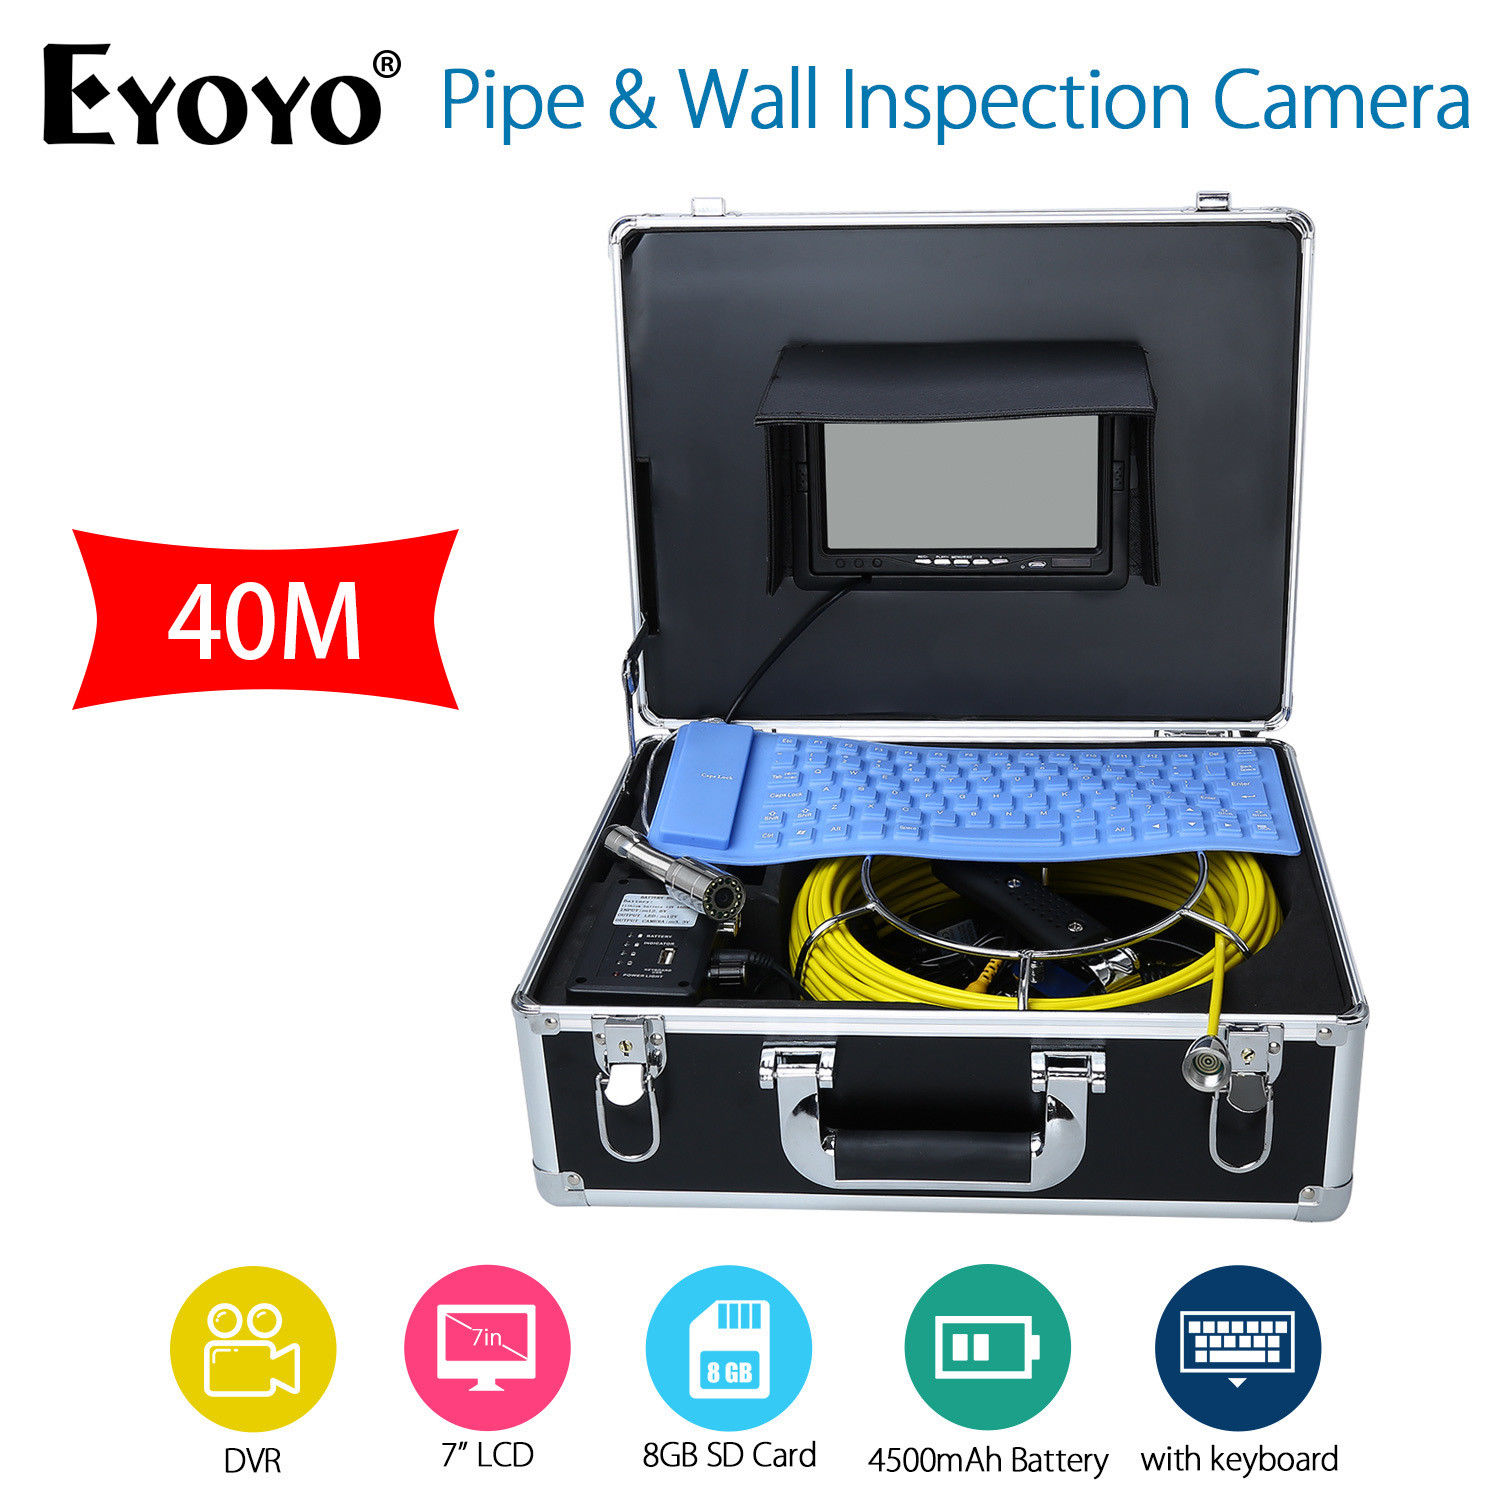 EYOYO 7 LCD Screen 40M 800*480 Sewer Drain Camera Pipe Wall Inspection Endoscope Camera w/Keyboard DVR Recording HD 1000TVL 8GB dhl free wp90 50m industrial pipeline endoscope 6 5 17 23mm snake video camera 9 lcd sewer drain pipe inspection camera system